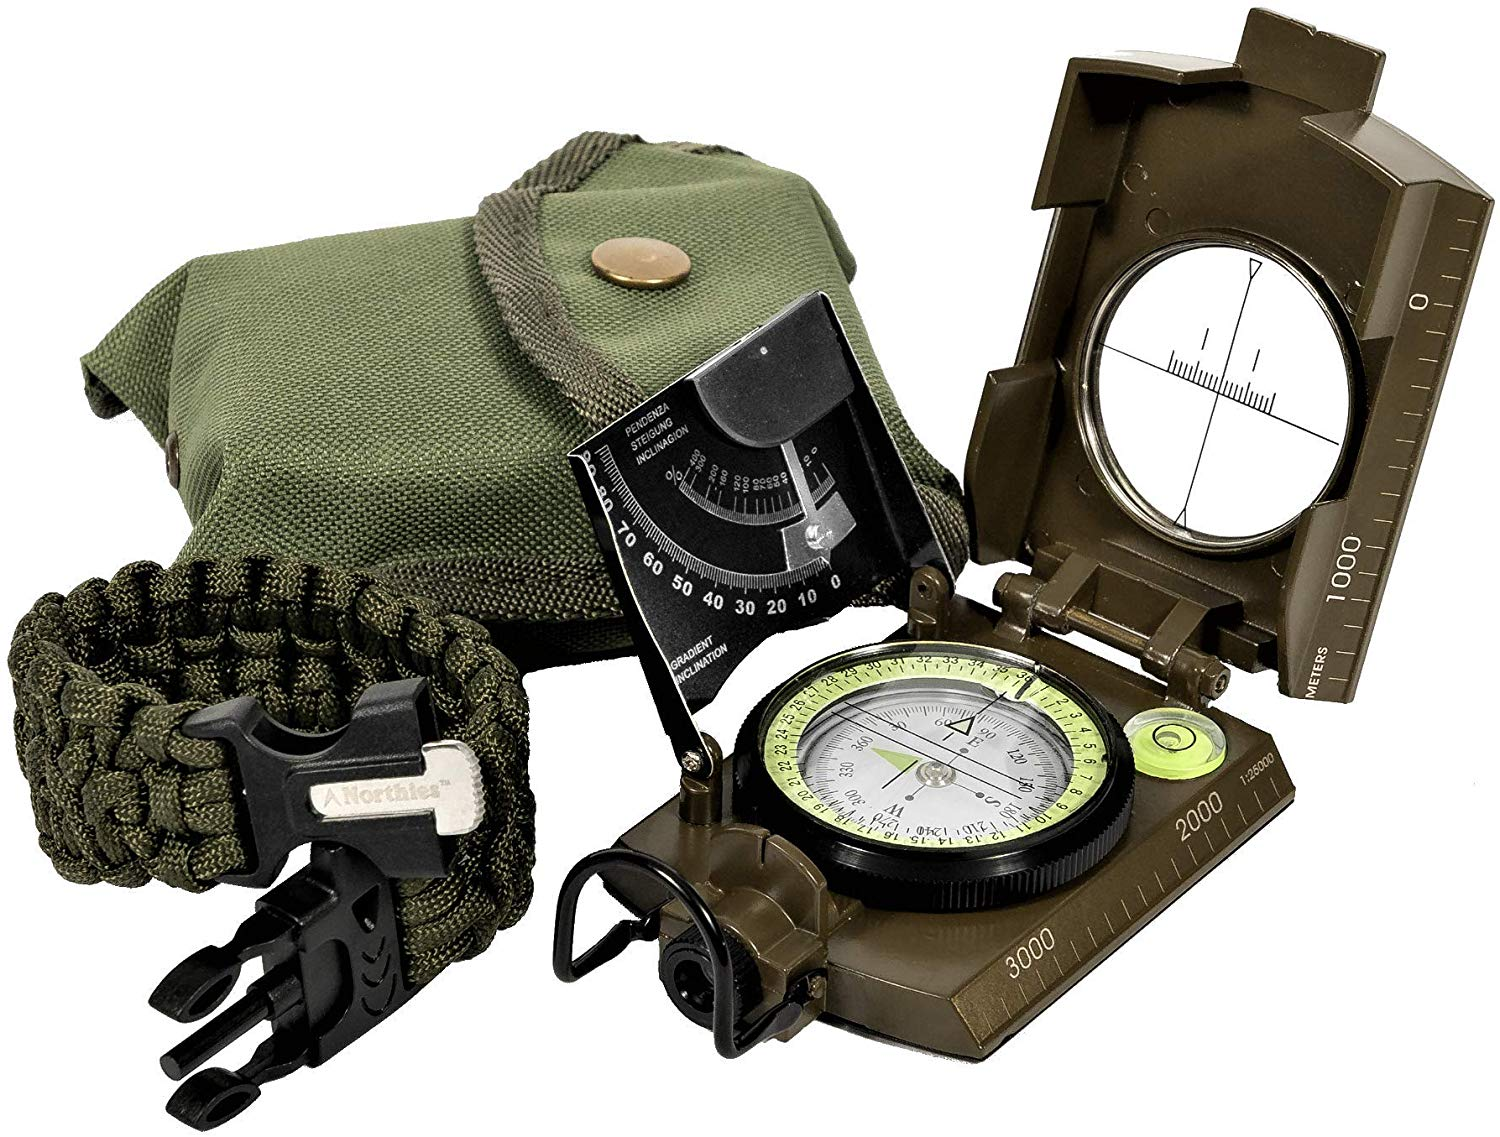 Northies Combo Pack Military Lensatic Sighting Compass and Paracord Survival Bracelet